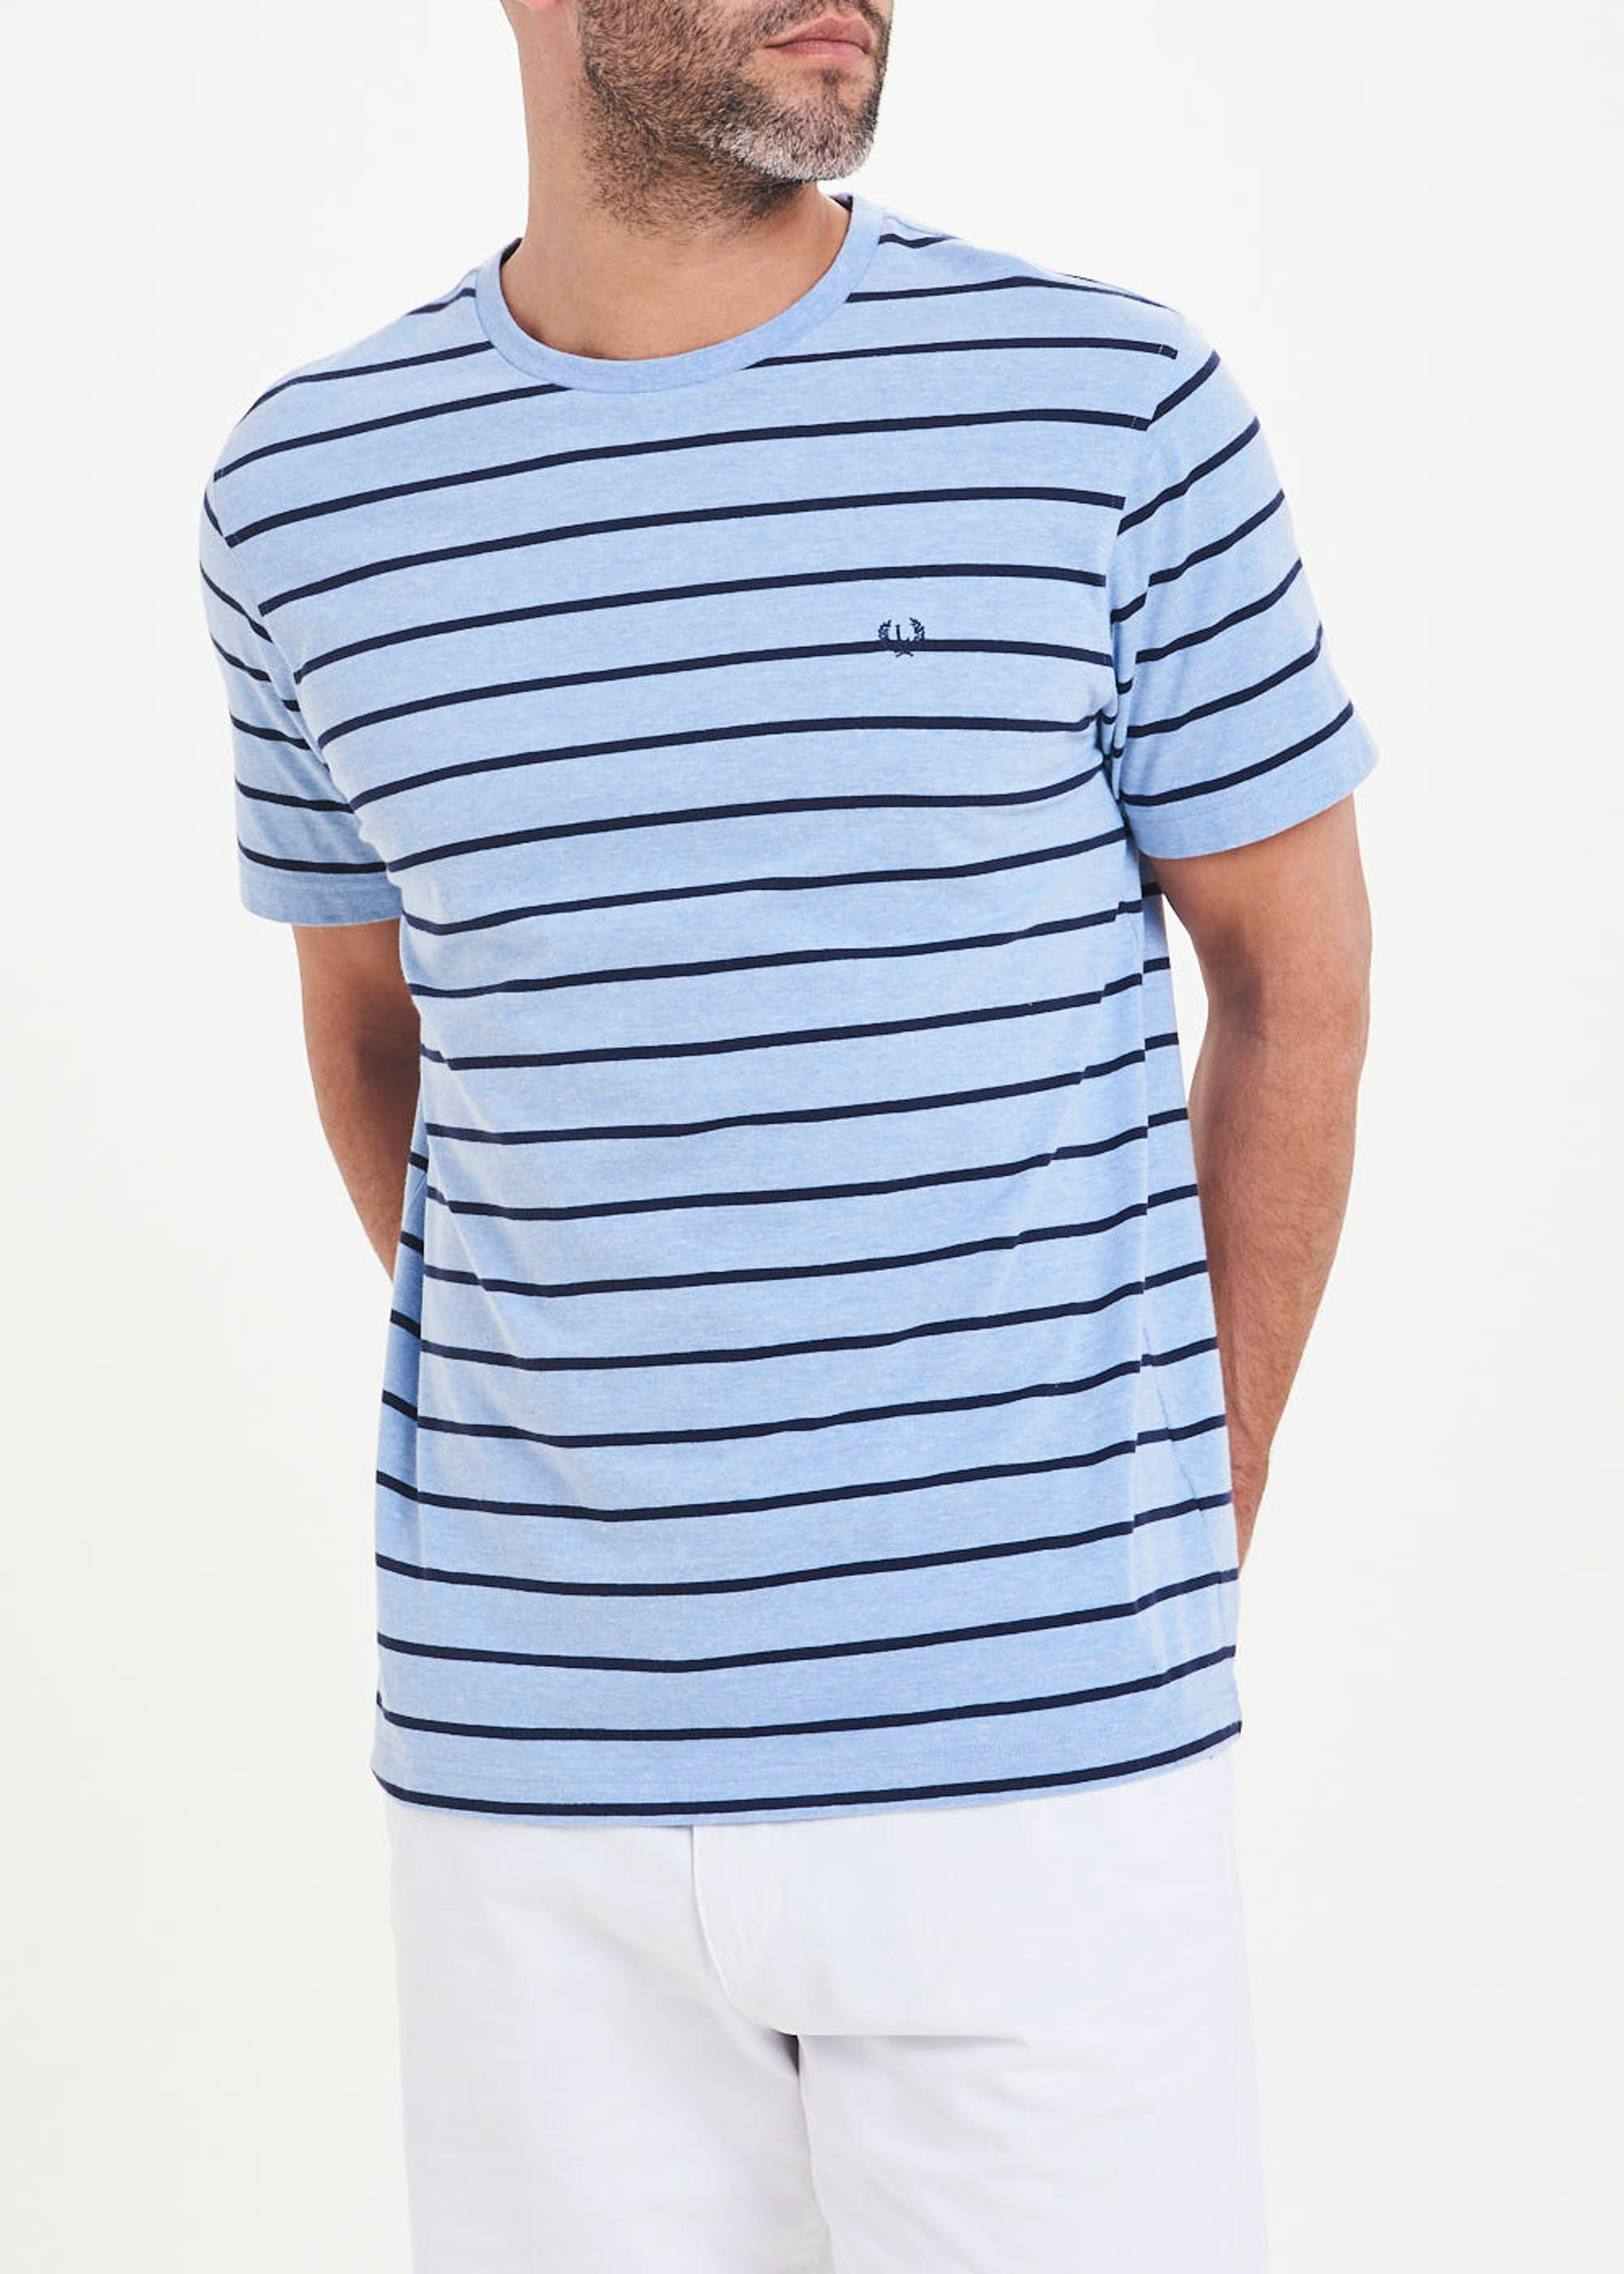 Lincoln Stripe T-Shirt Blue xktjqF